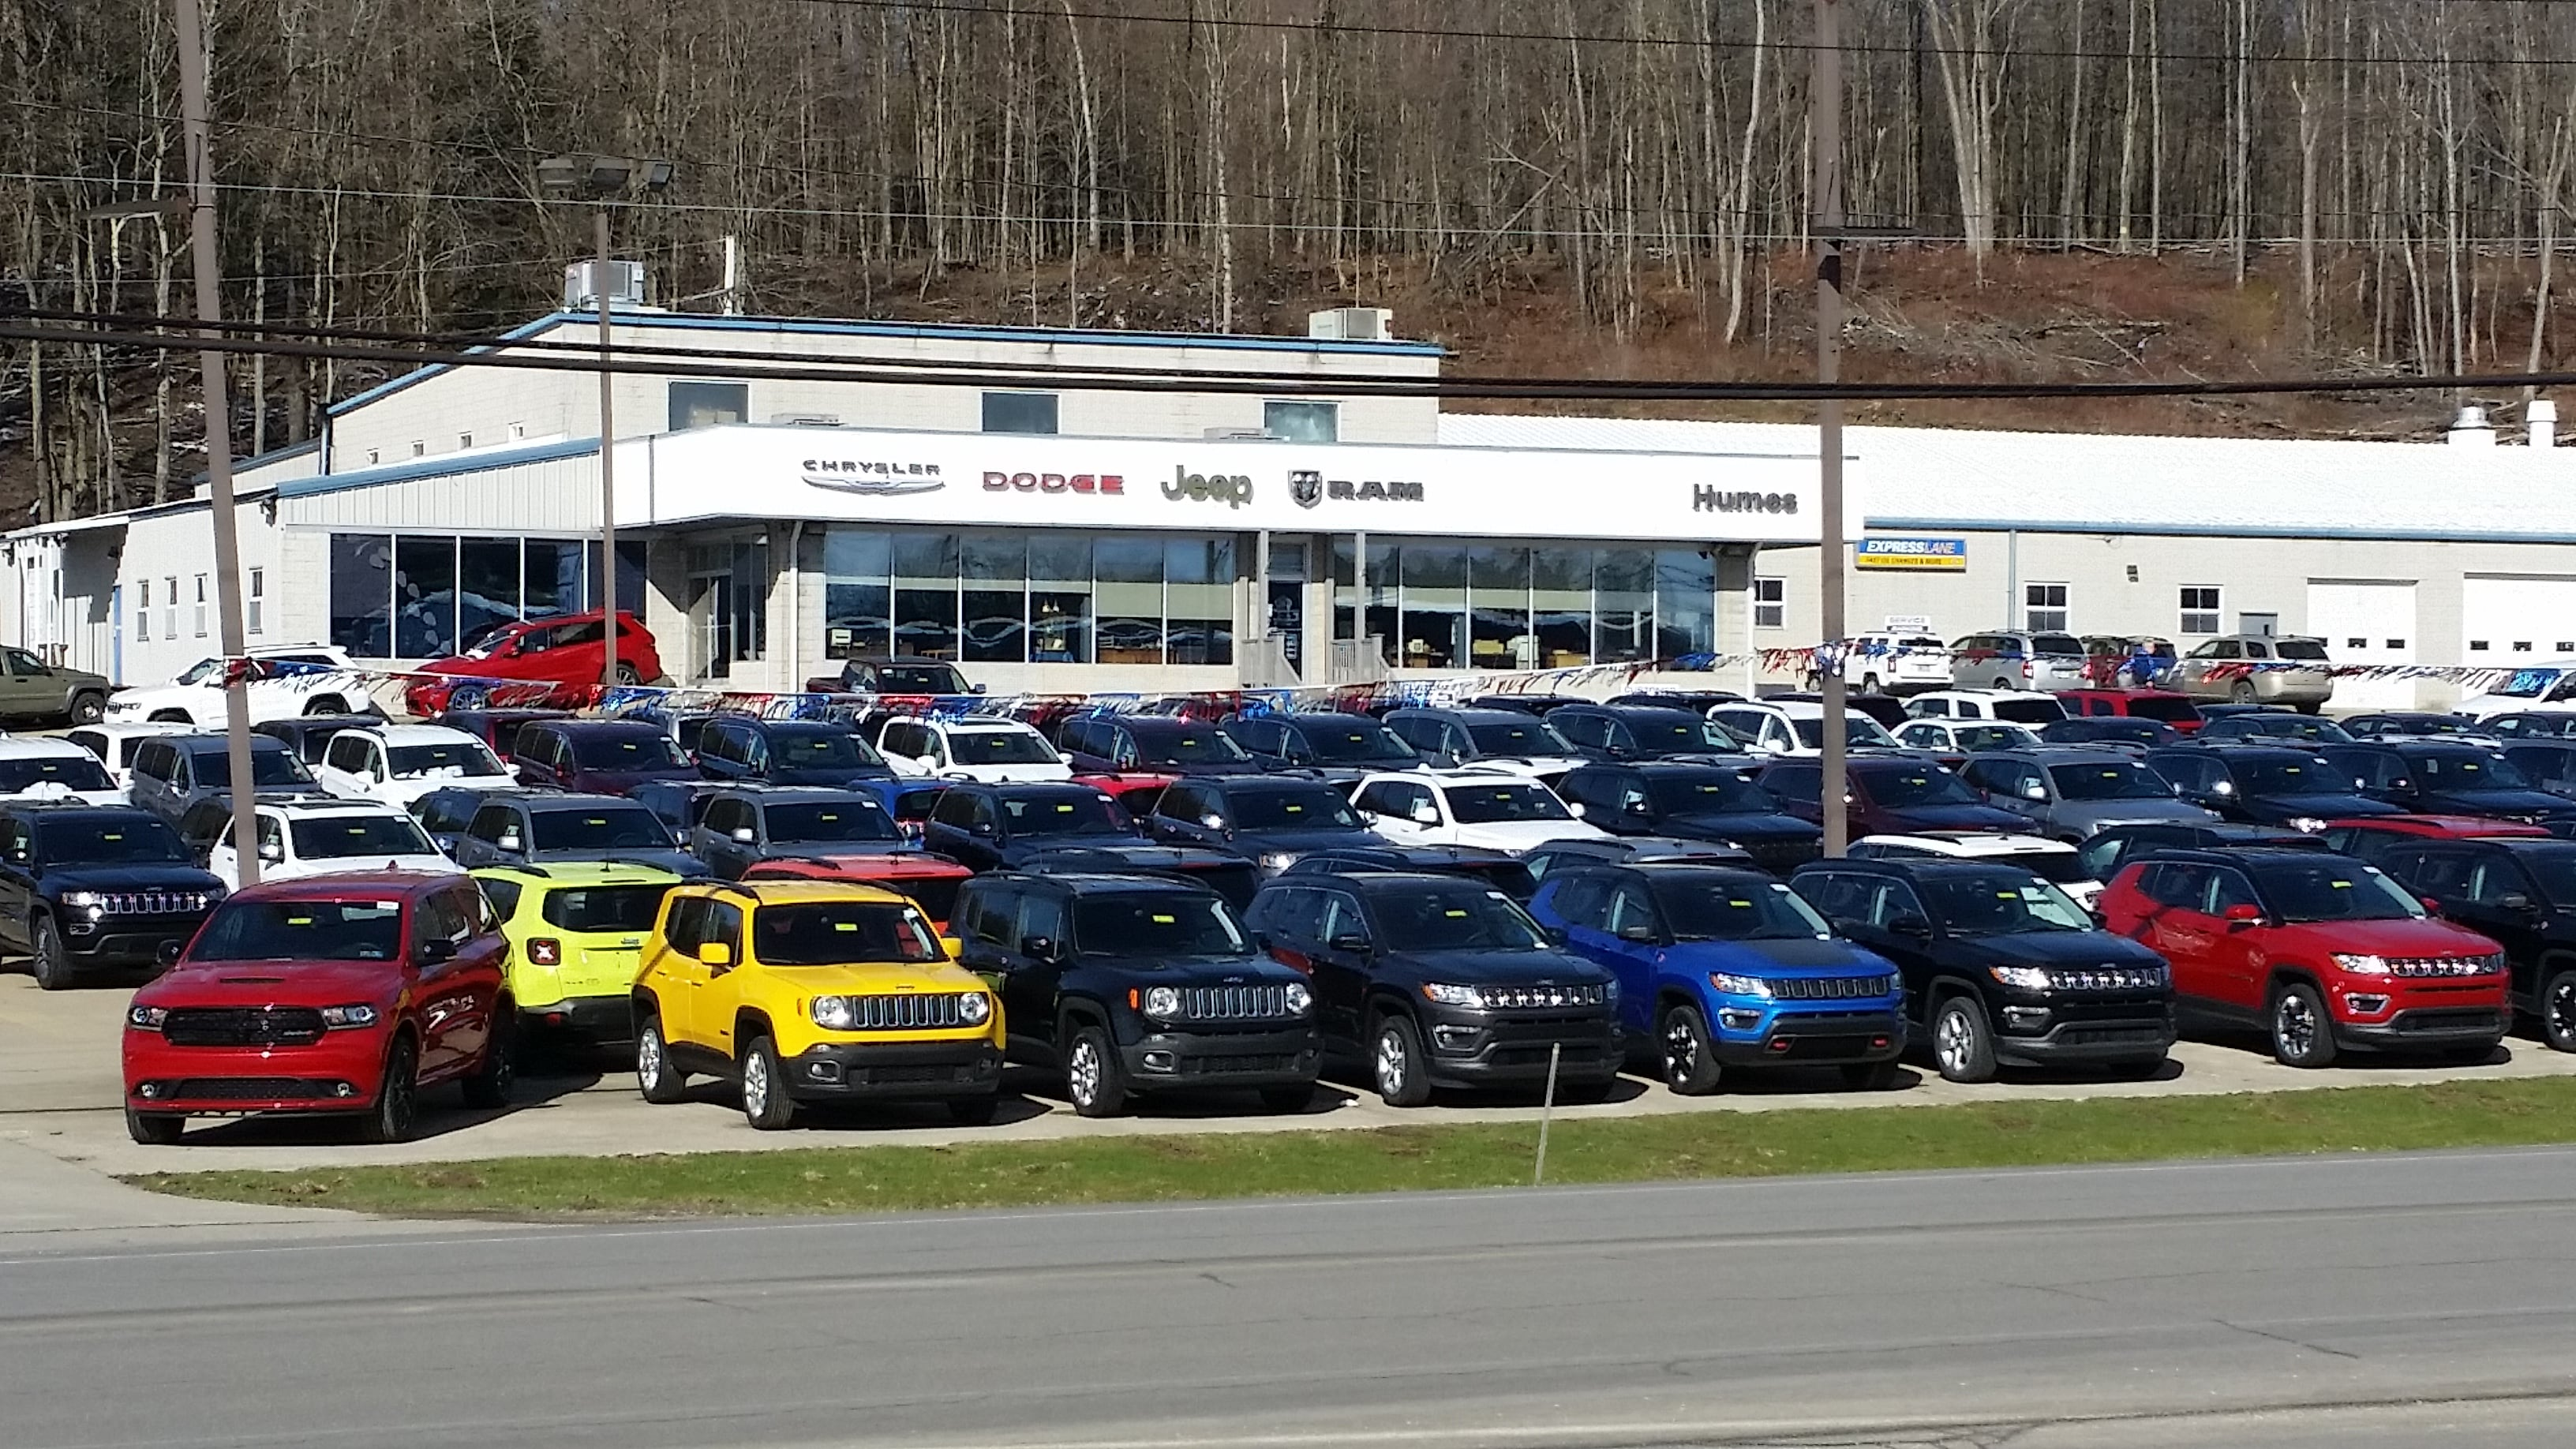 About Waterford New Jeep Dodge Ram Chrysler Used Car Dealer